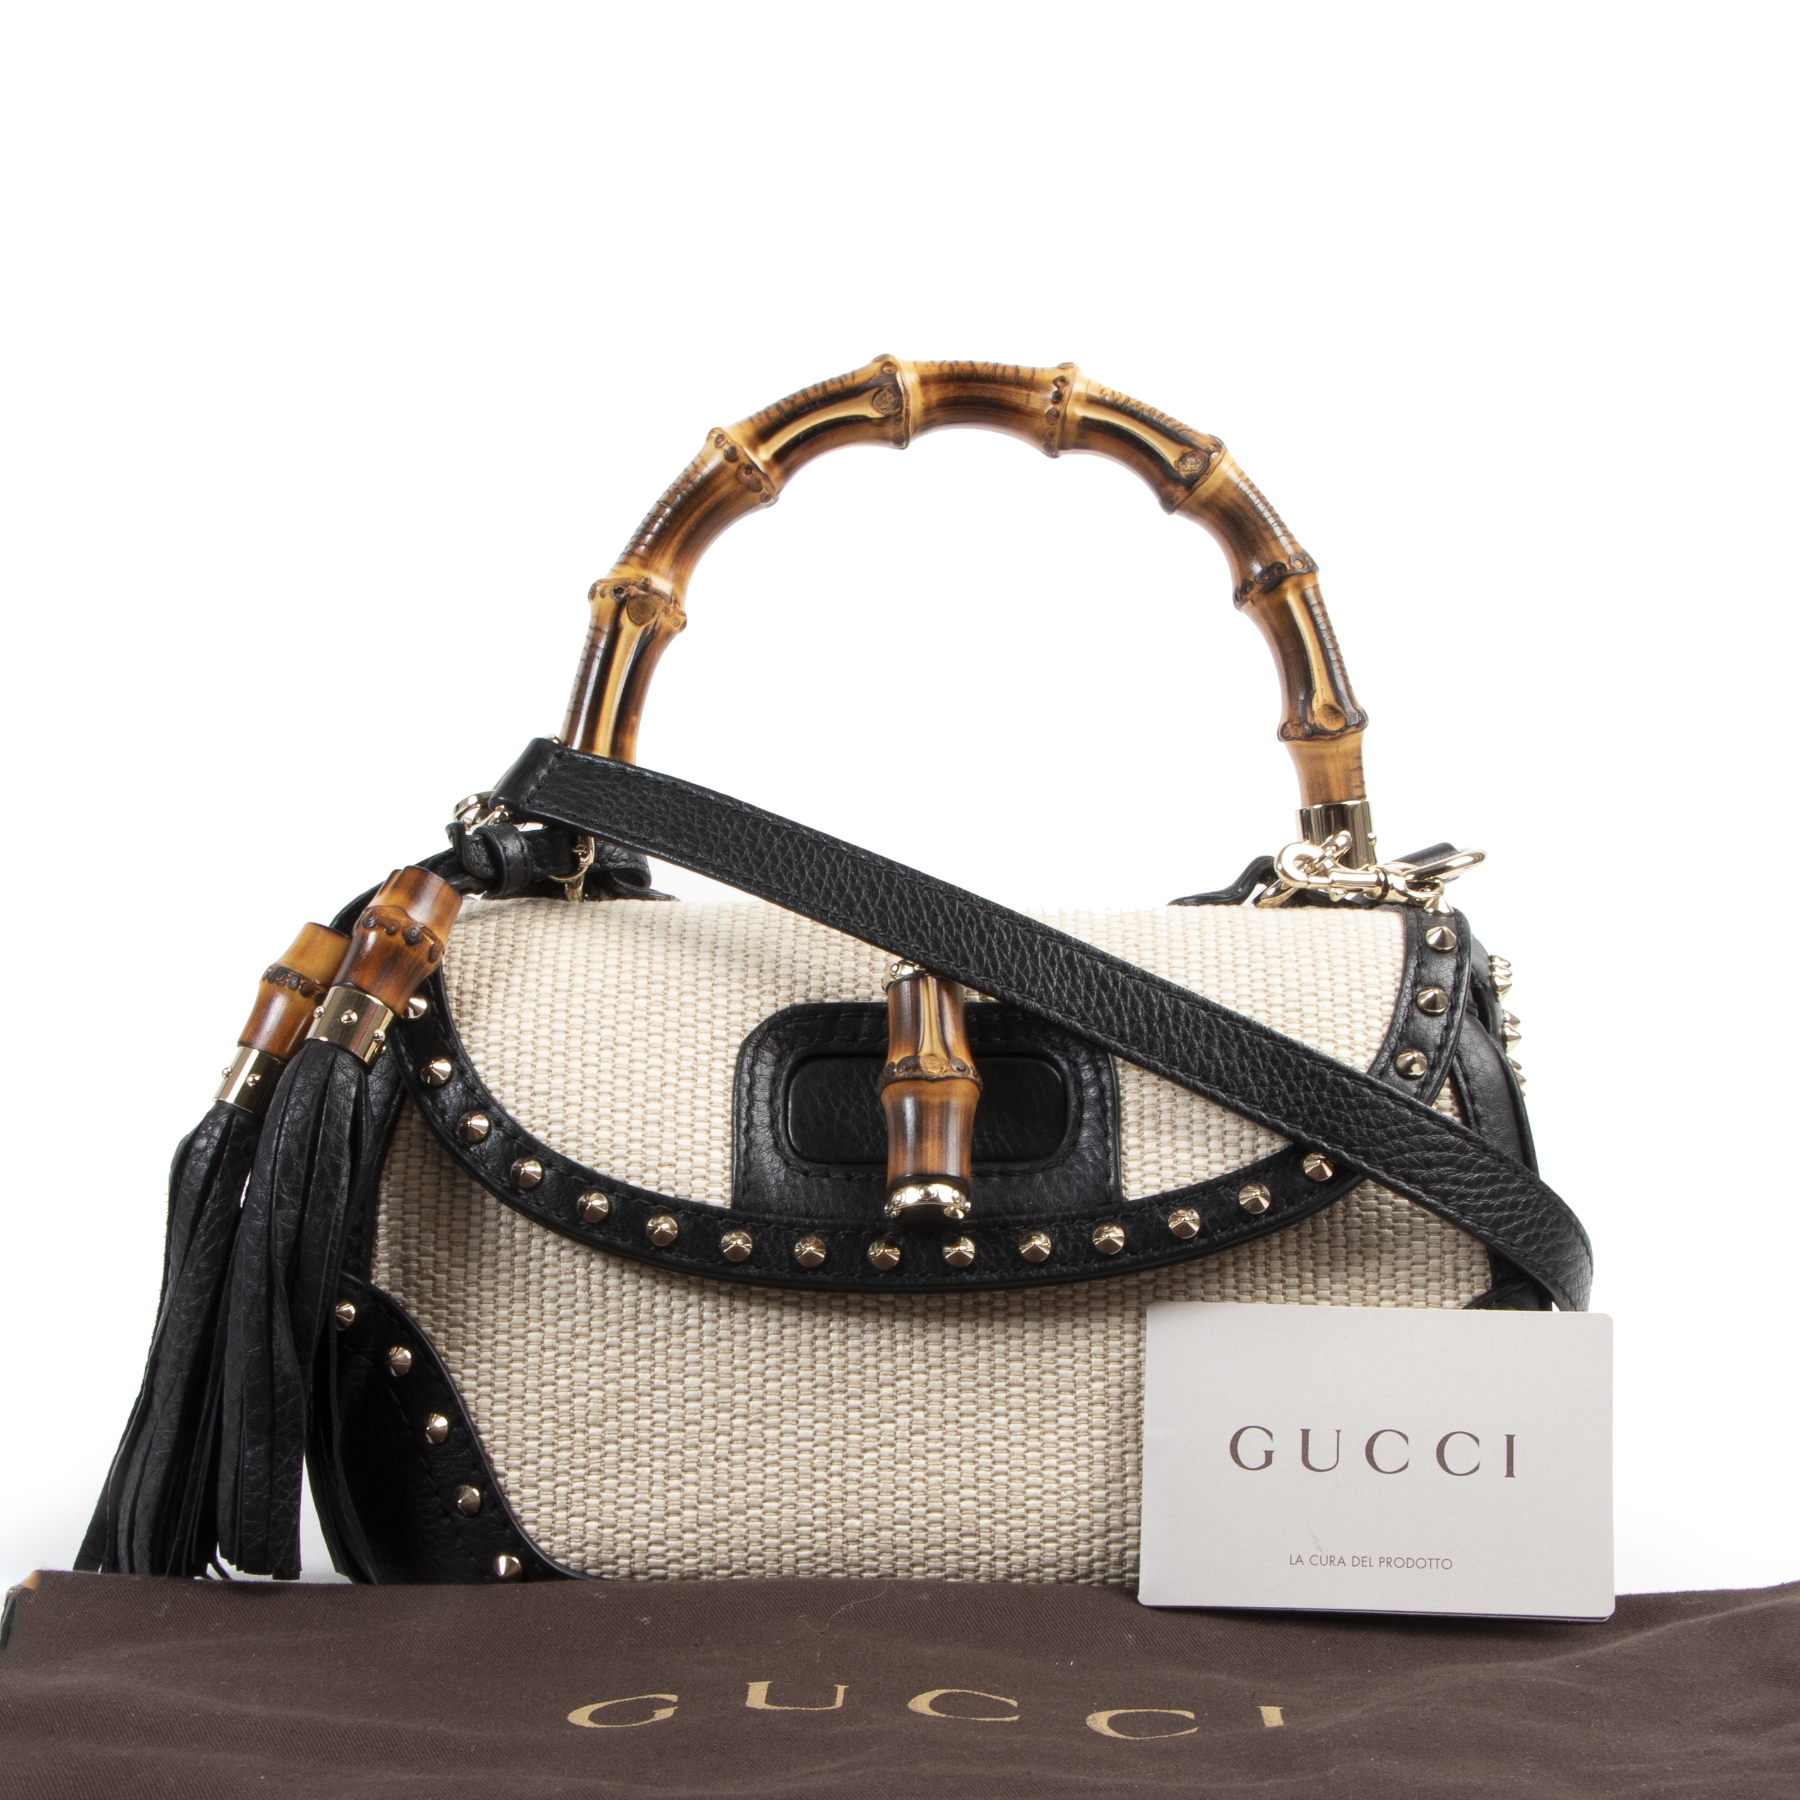 Authentic secondhand Gucci Straw Studded Leather New Bamboo Top Handle Bag designer bags fashion luxury vintage webshop safe secure online shopping